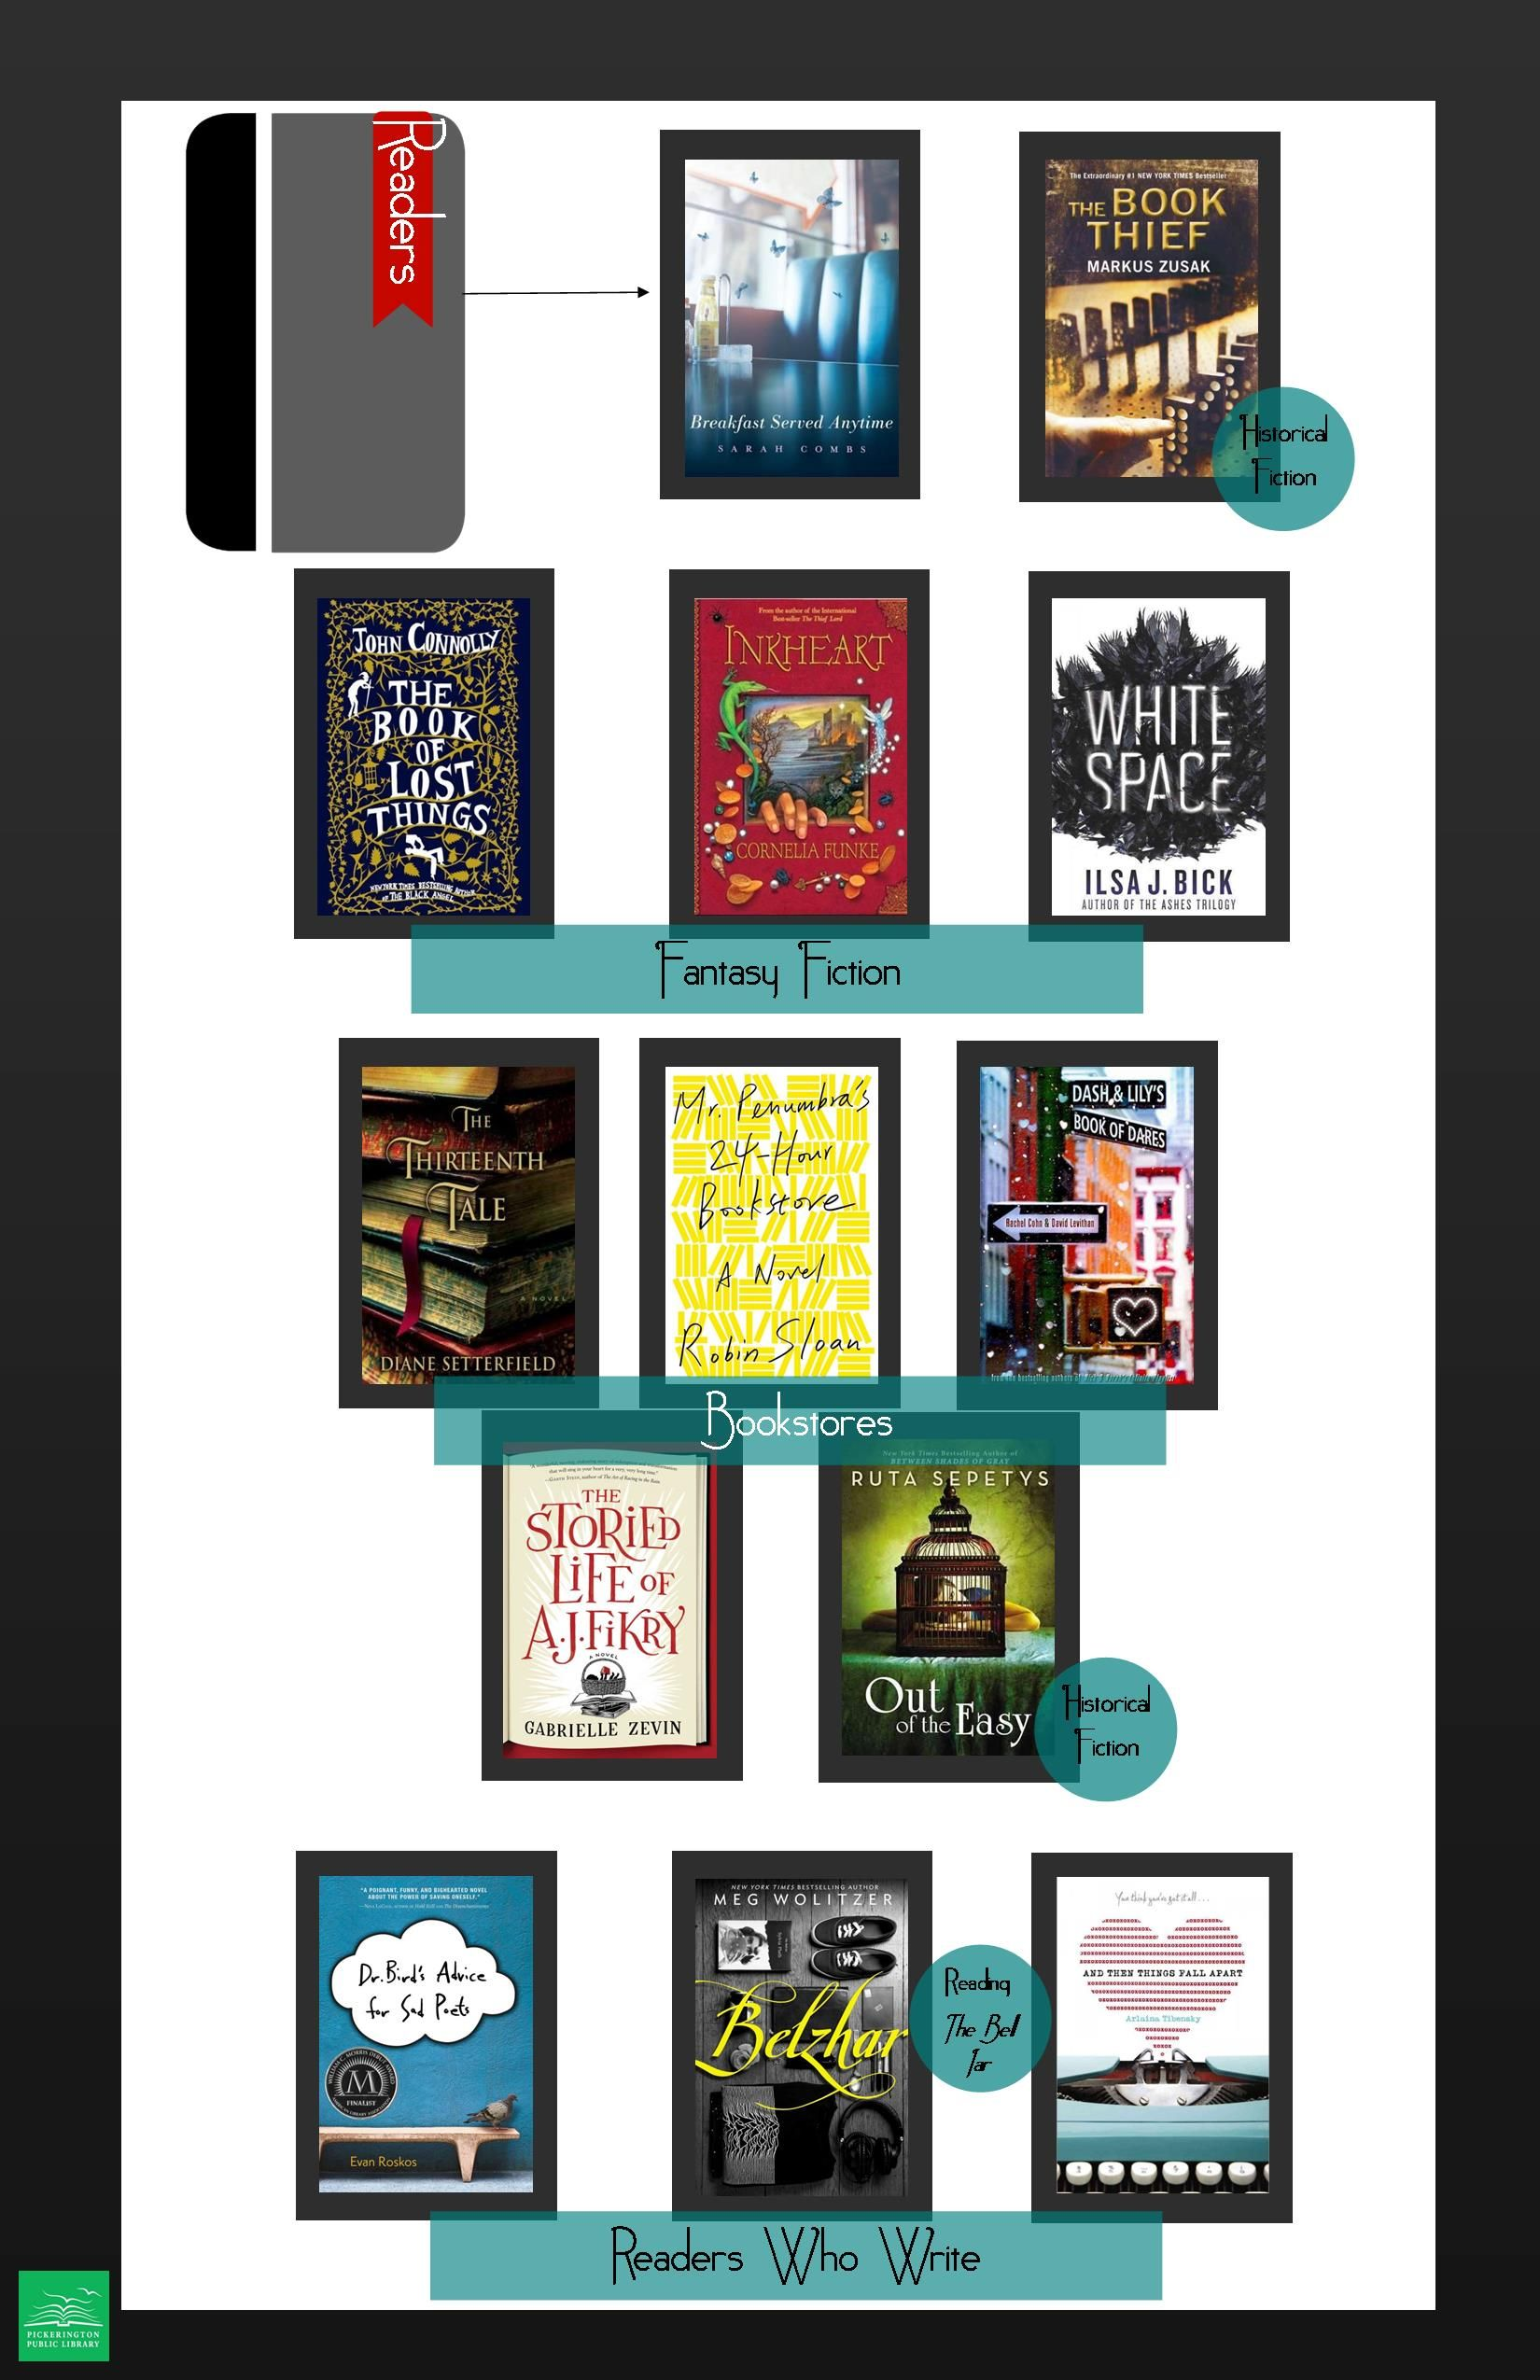 Love books about readers and reading? Check out these YA books!